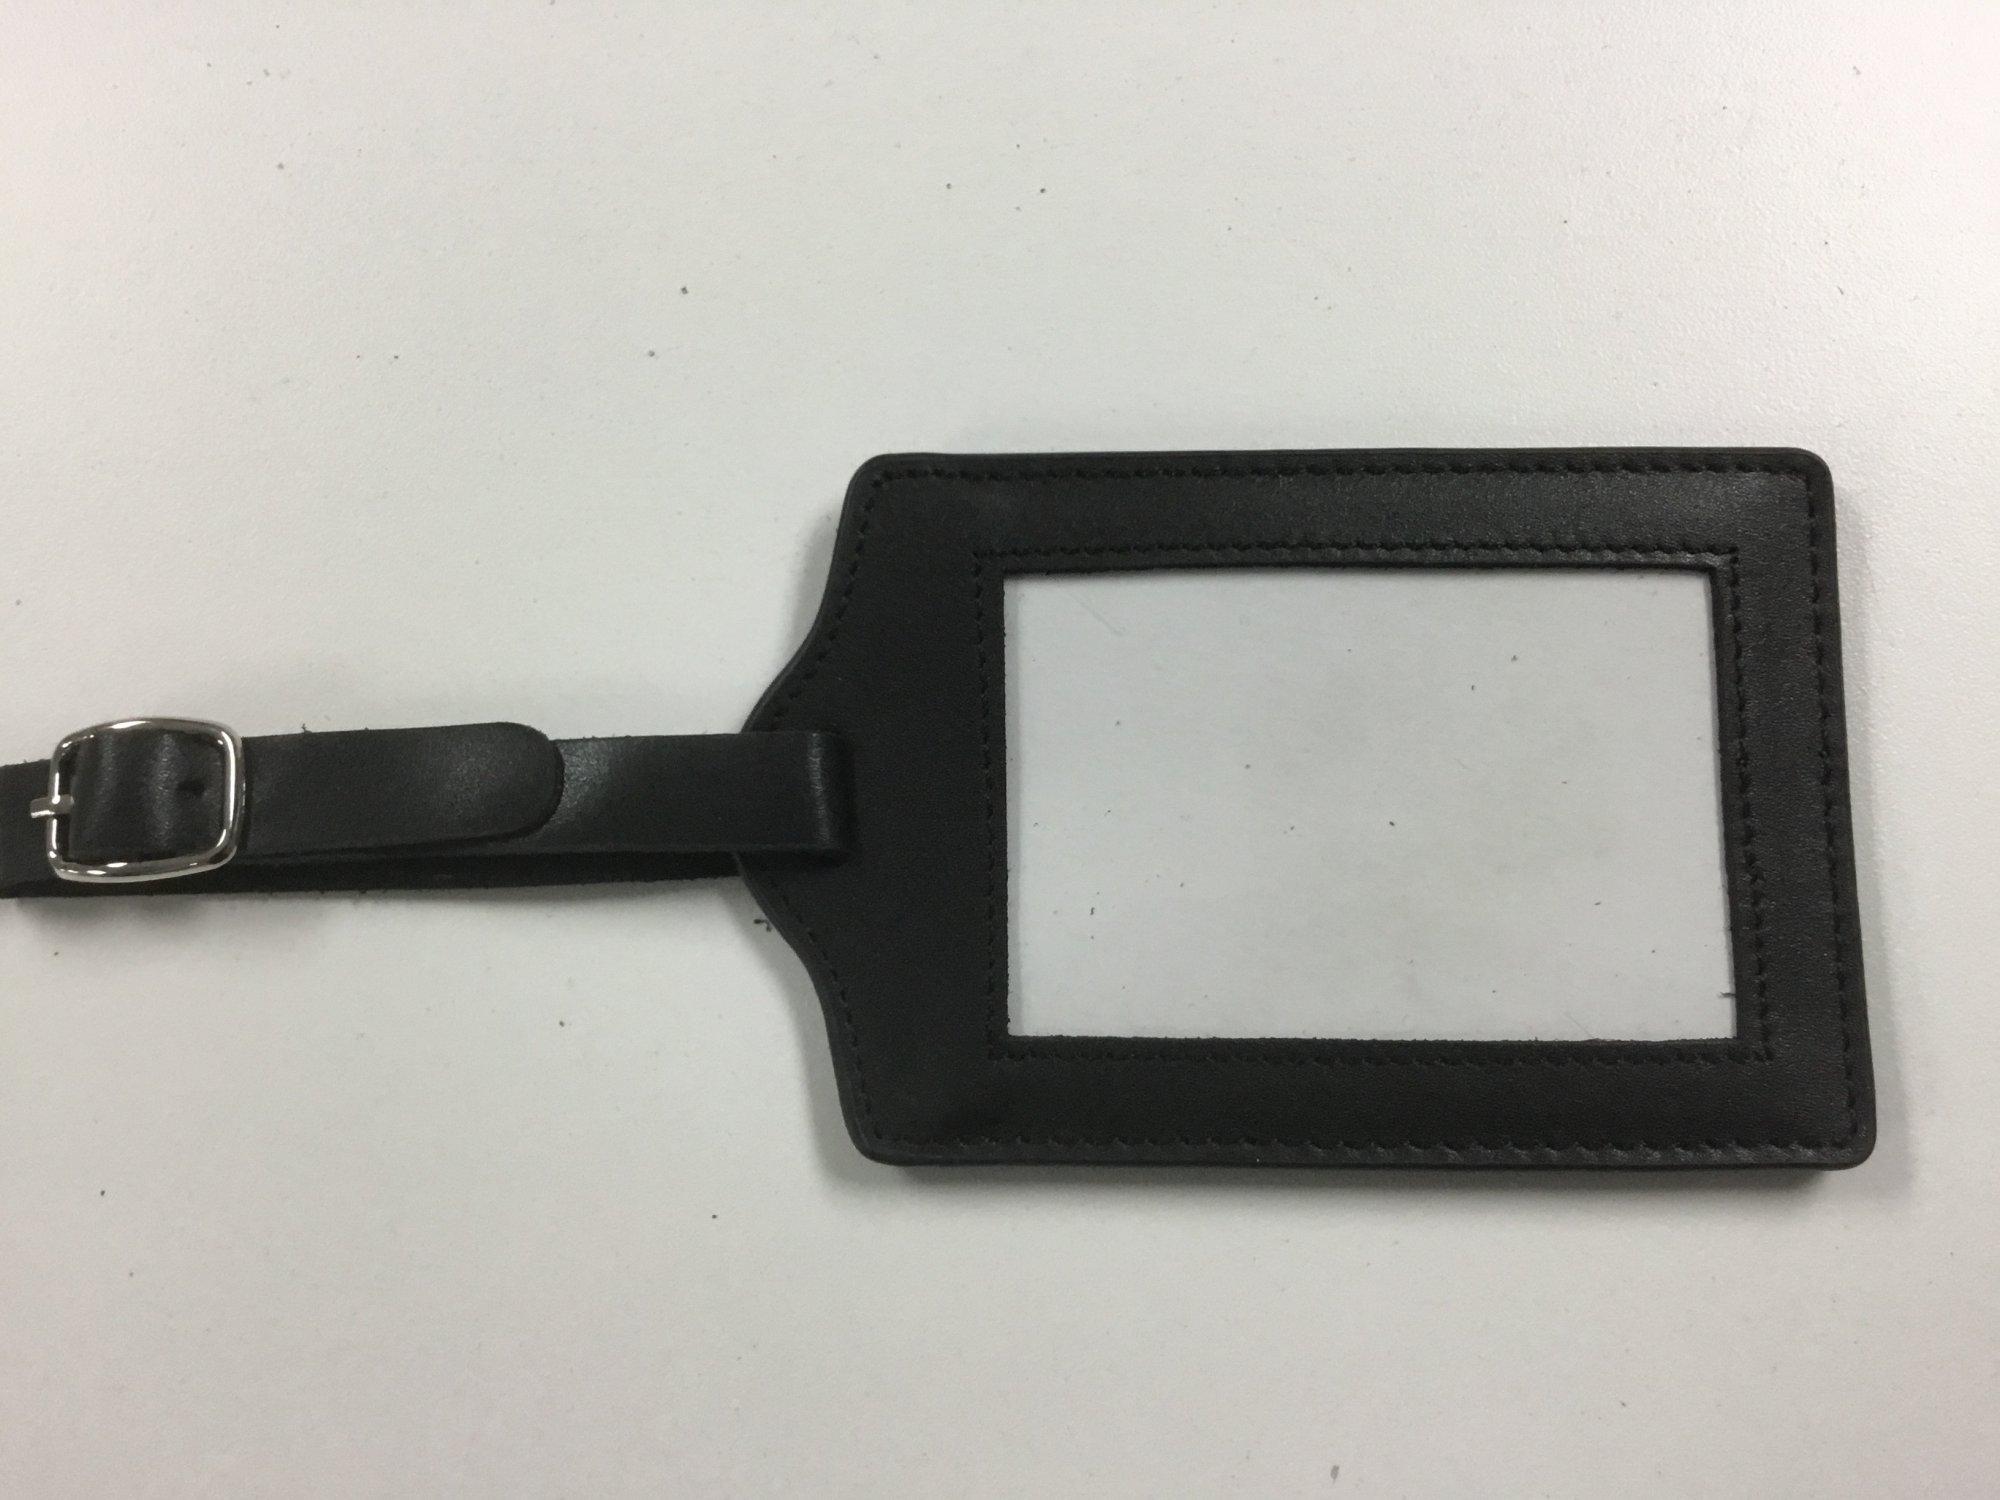 Black Luggage Tag, 3x2 opening